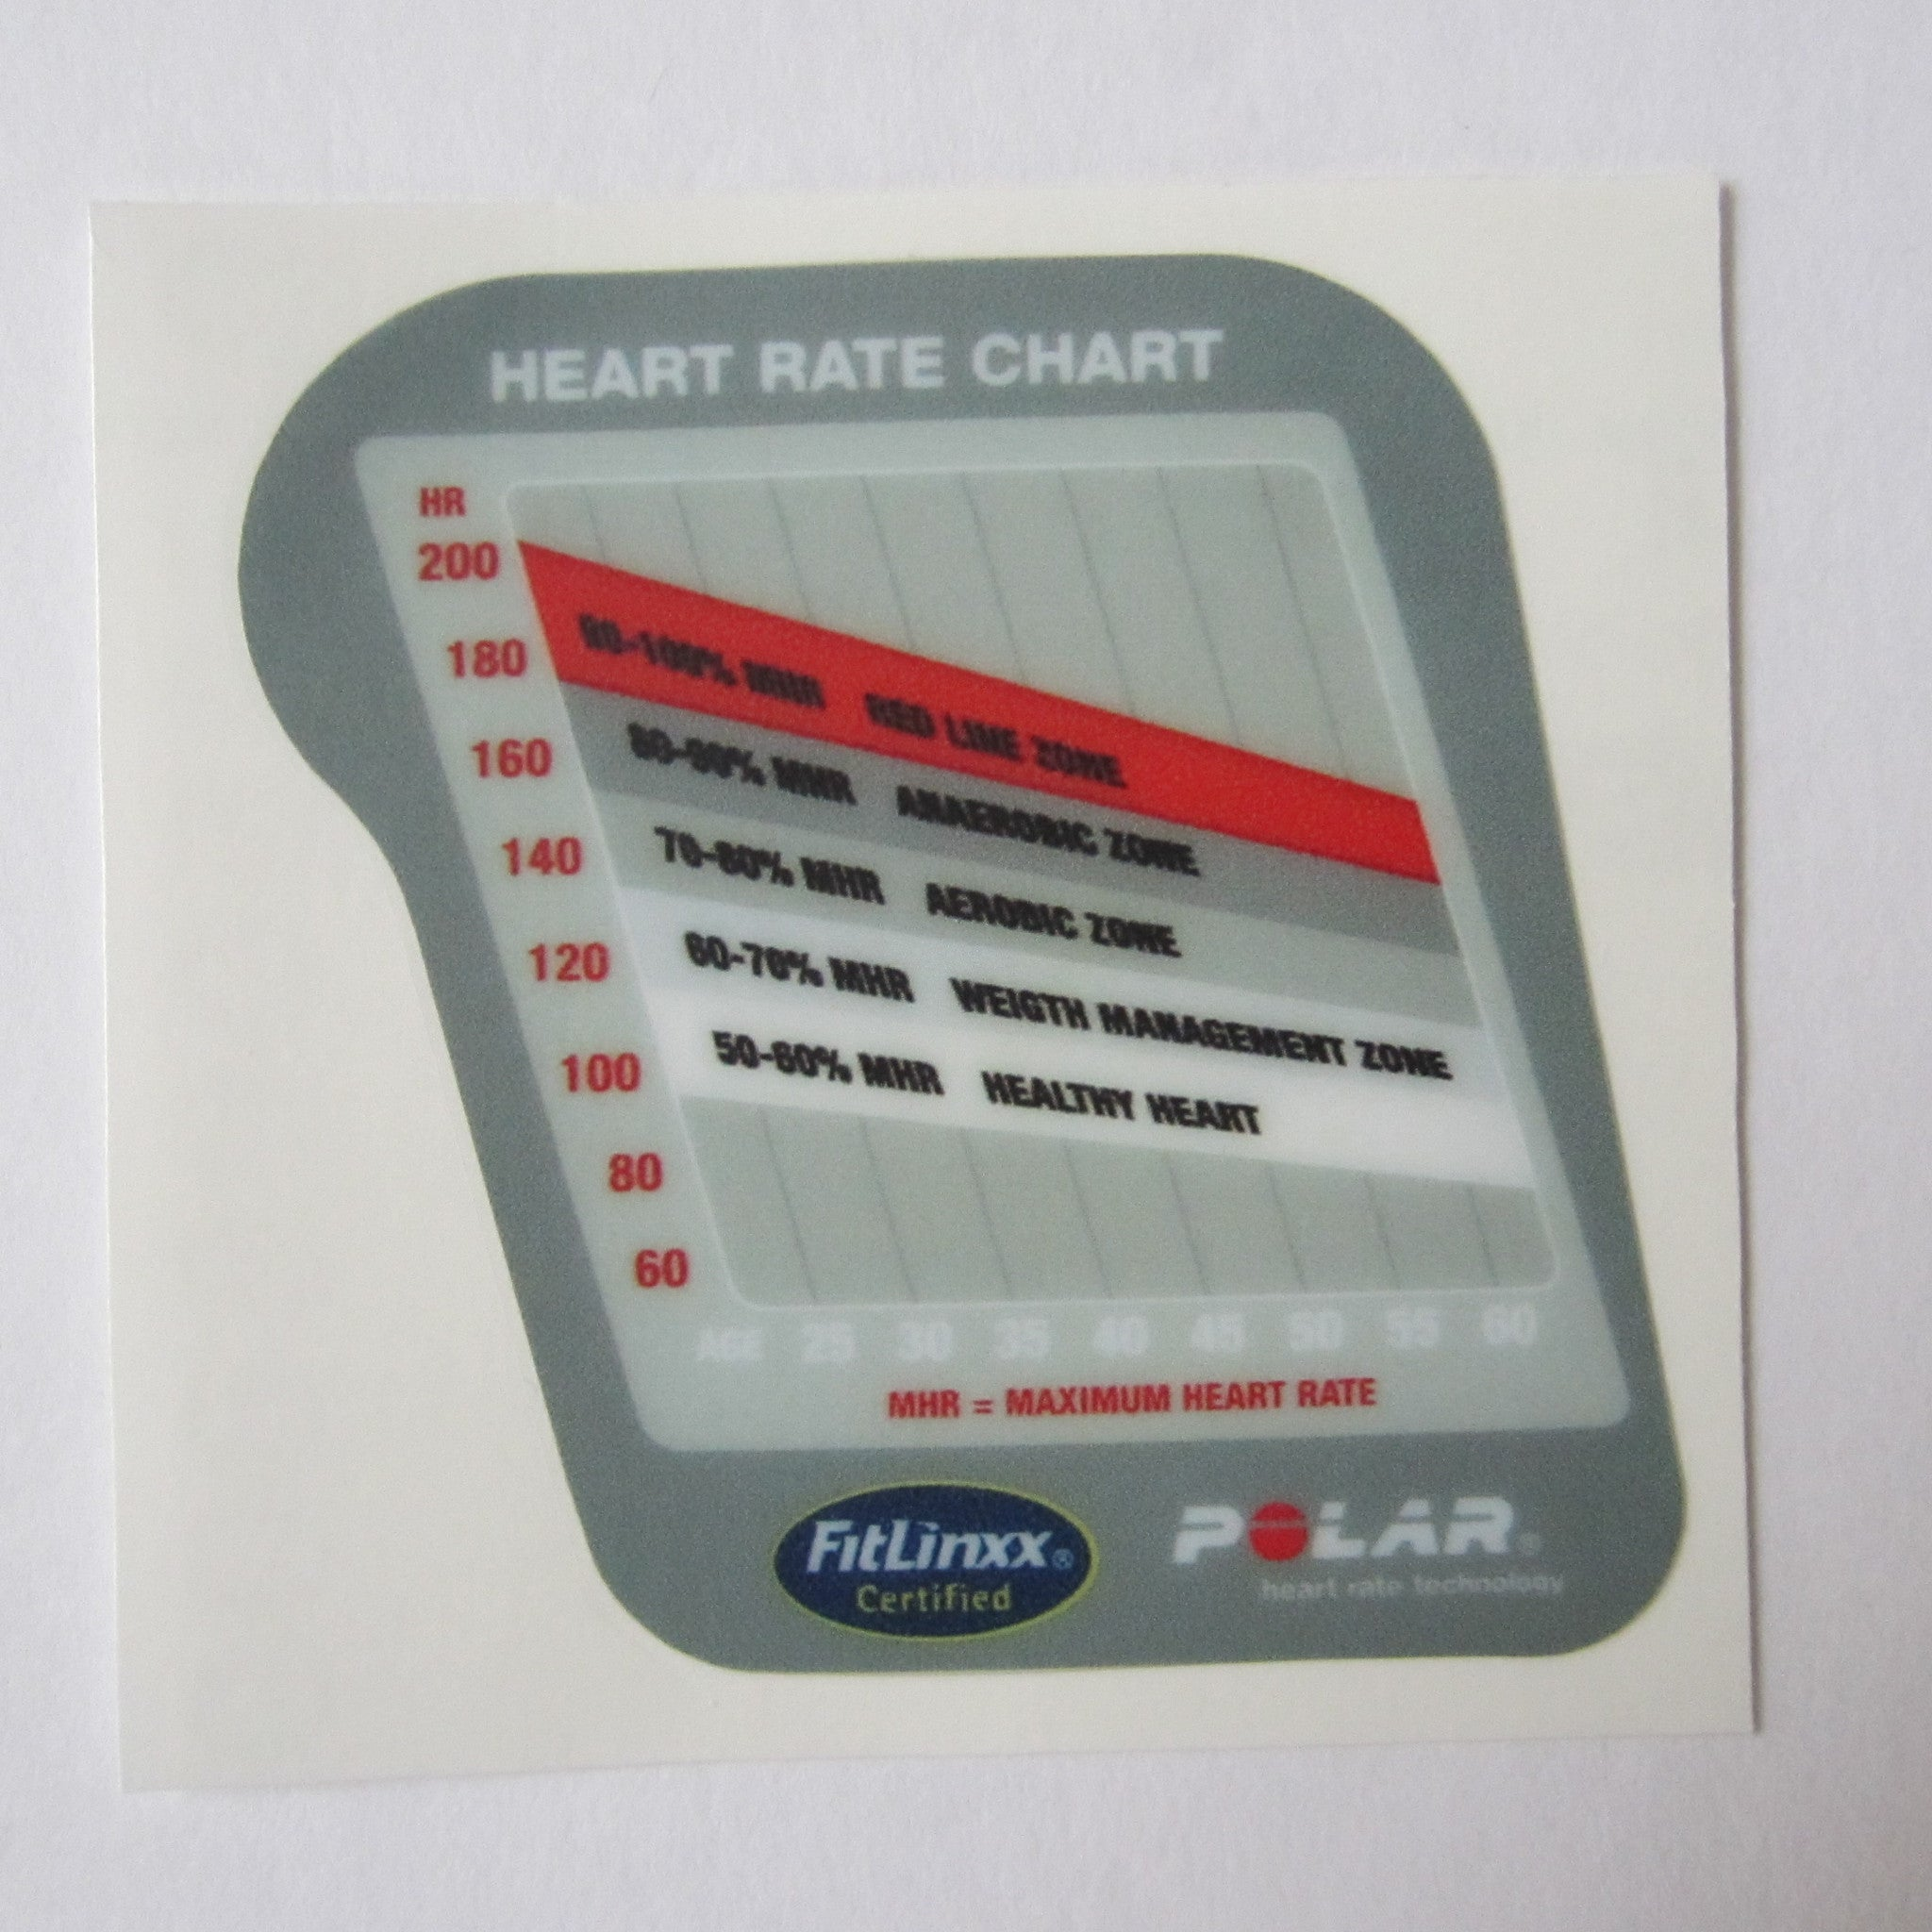 6300 Upright / 6400 Recumbent Heart Rate Chart Decal